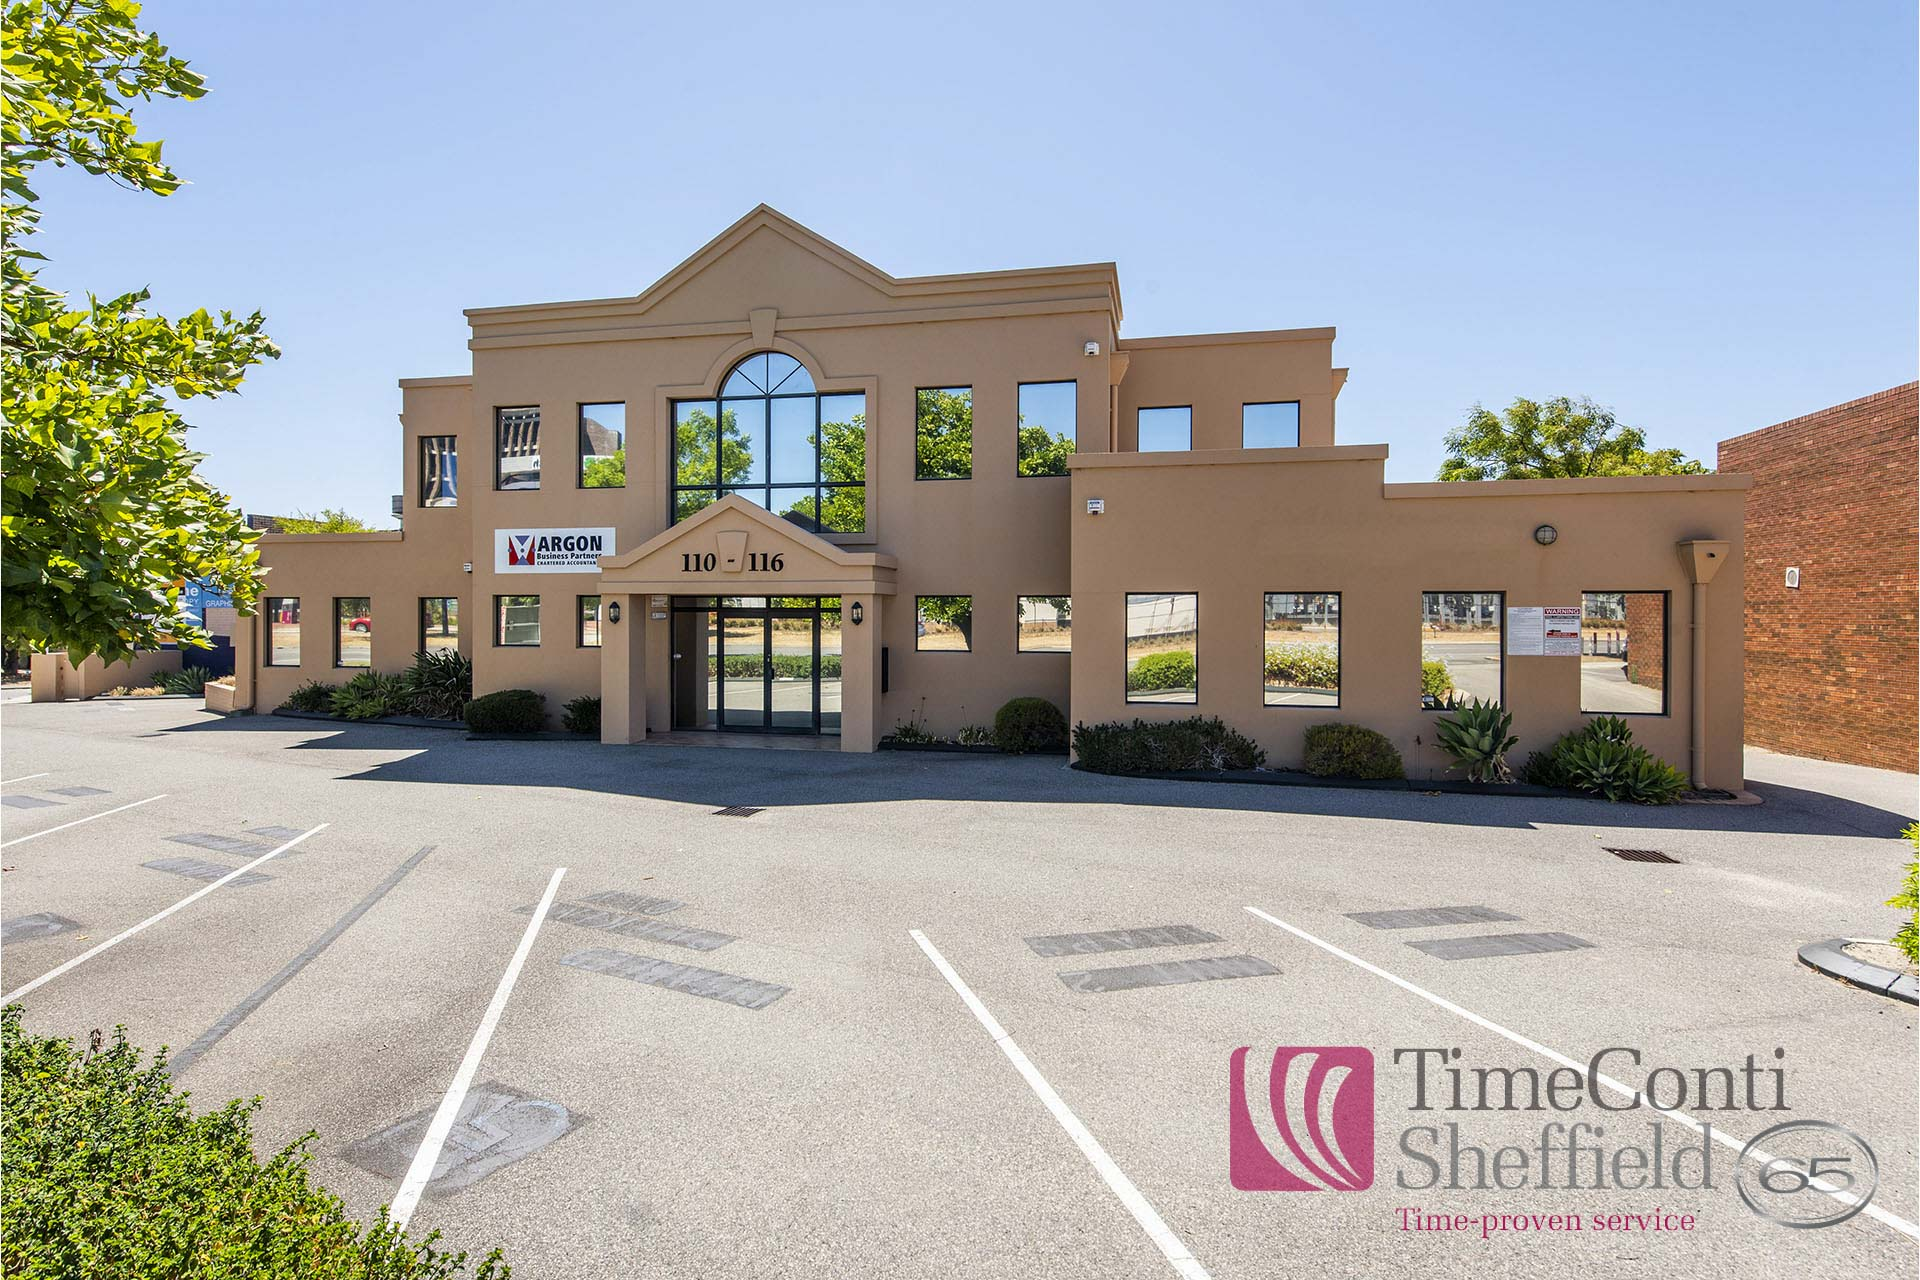 EXTREMELY GENEROUS INCENTIVES AVAILABLE FOR LONG TERM LEASES